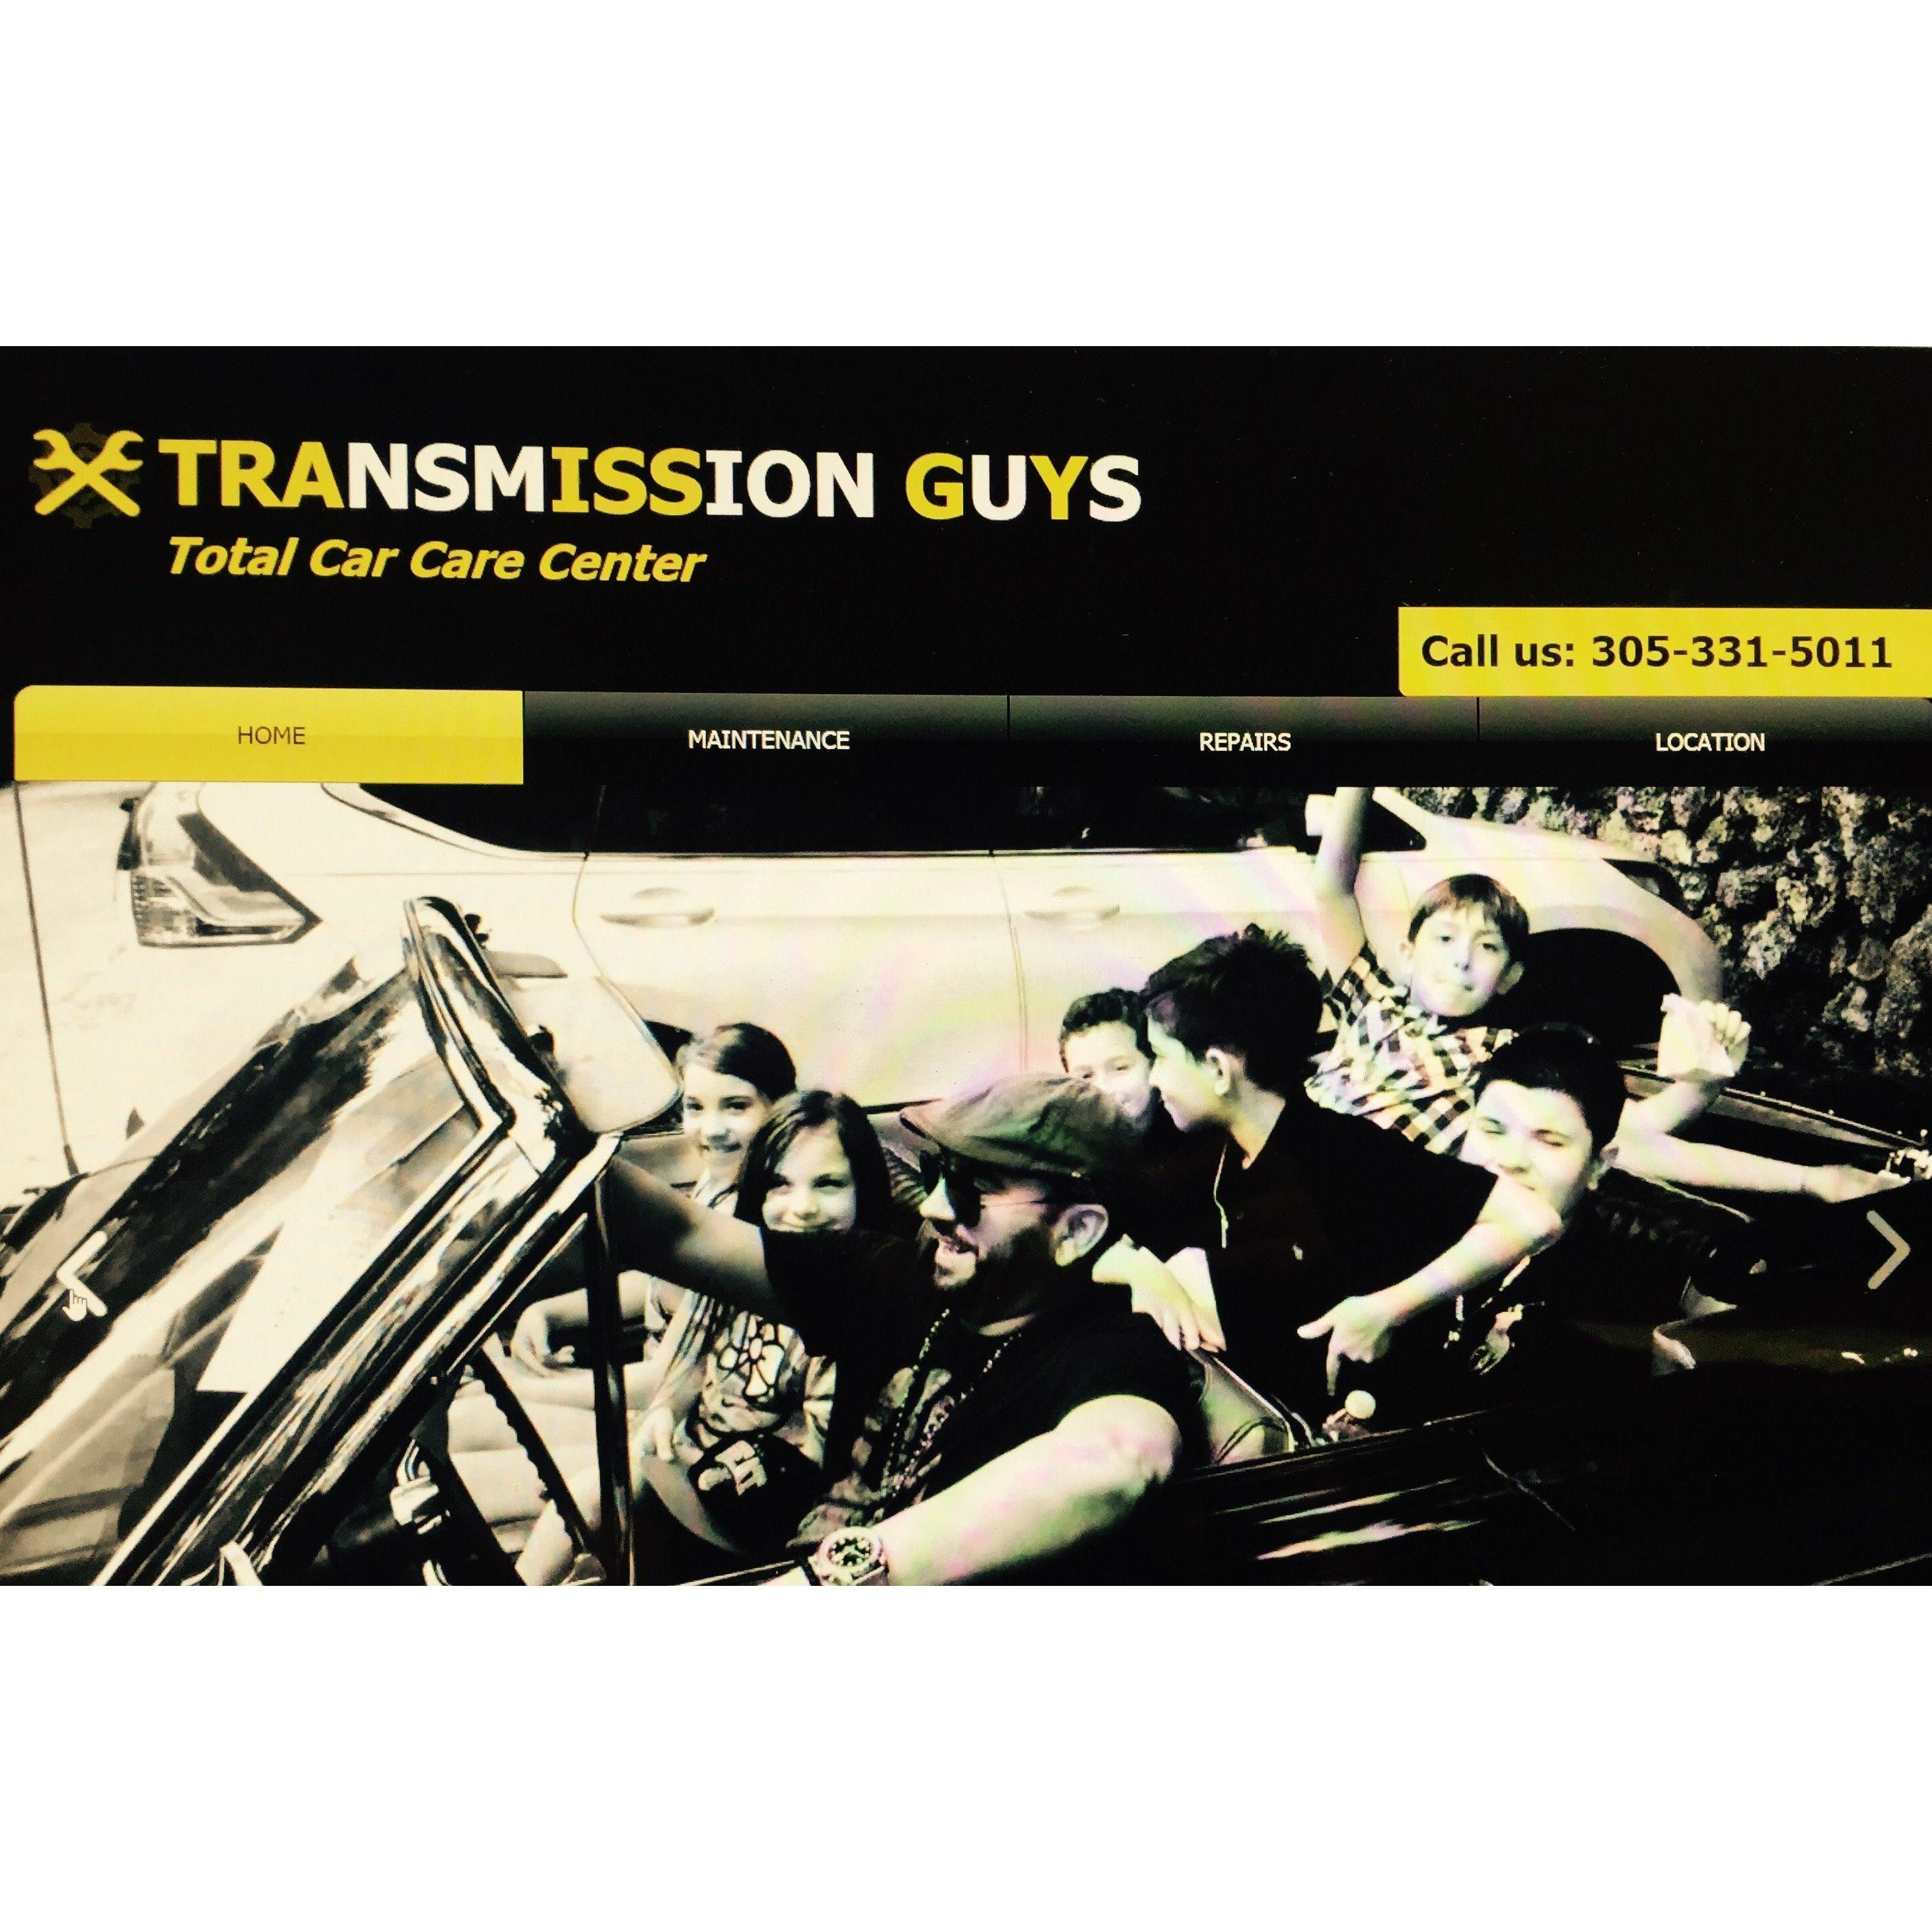 Transmission Guys & Total Car Care Formely known as Aaction Transmissions - Total Car Care